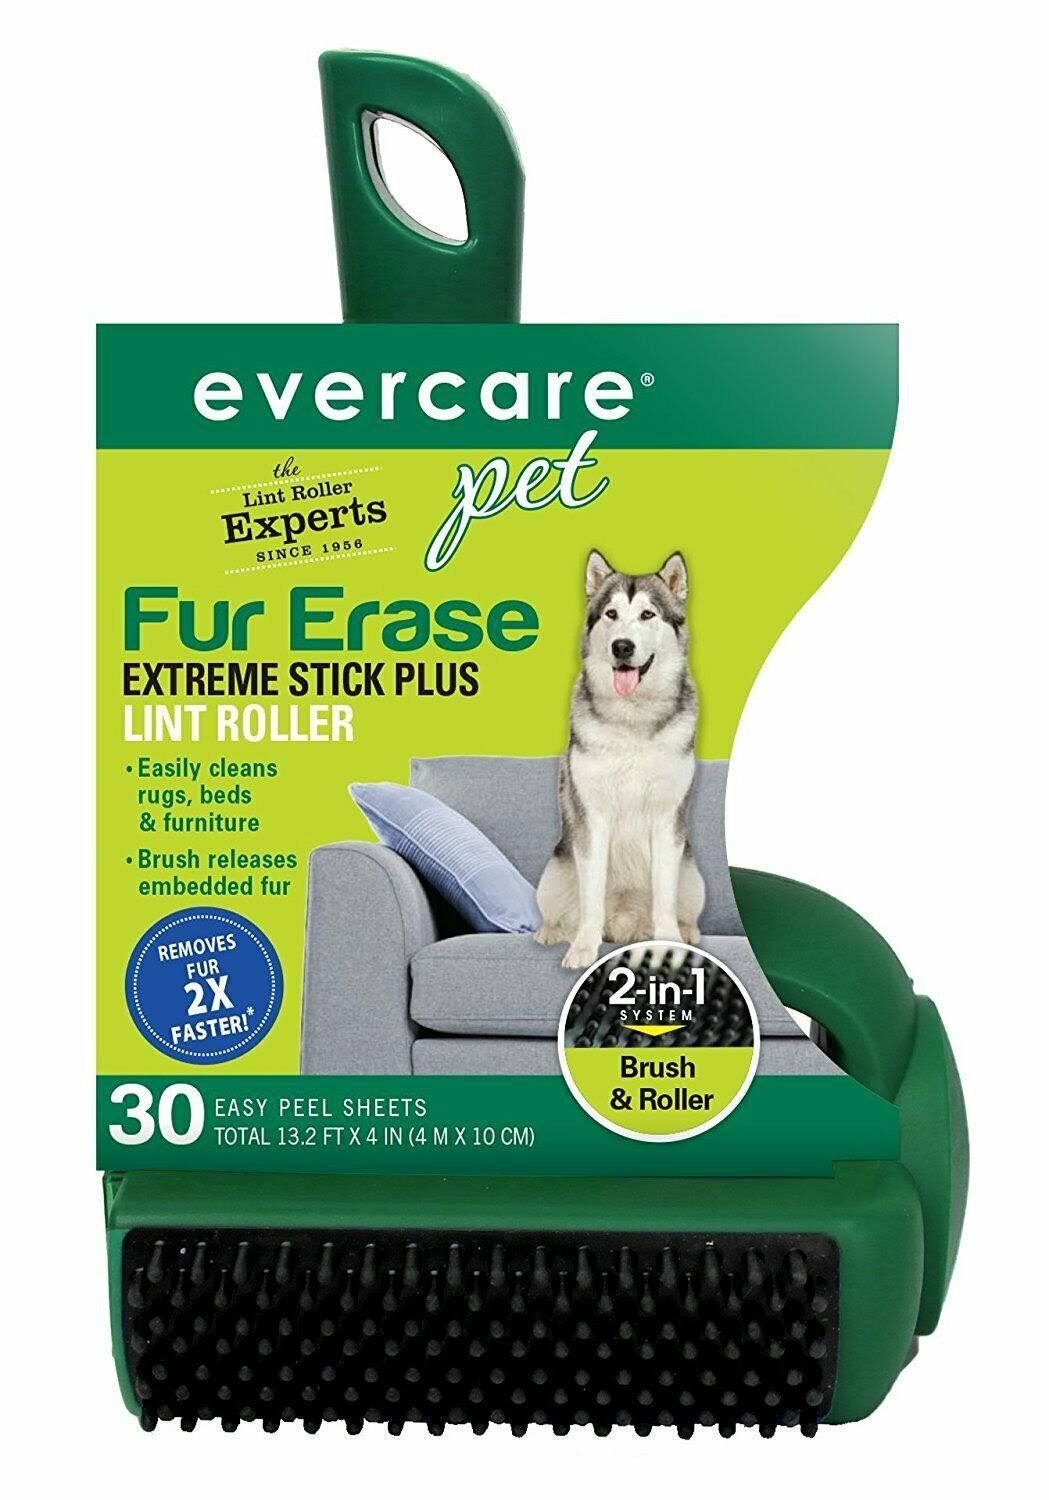 Evercare Fur Erase Pet Hair Remover - 30 Sheet Lint Roller